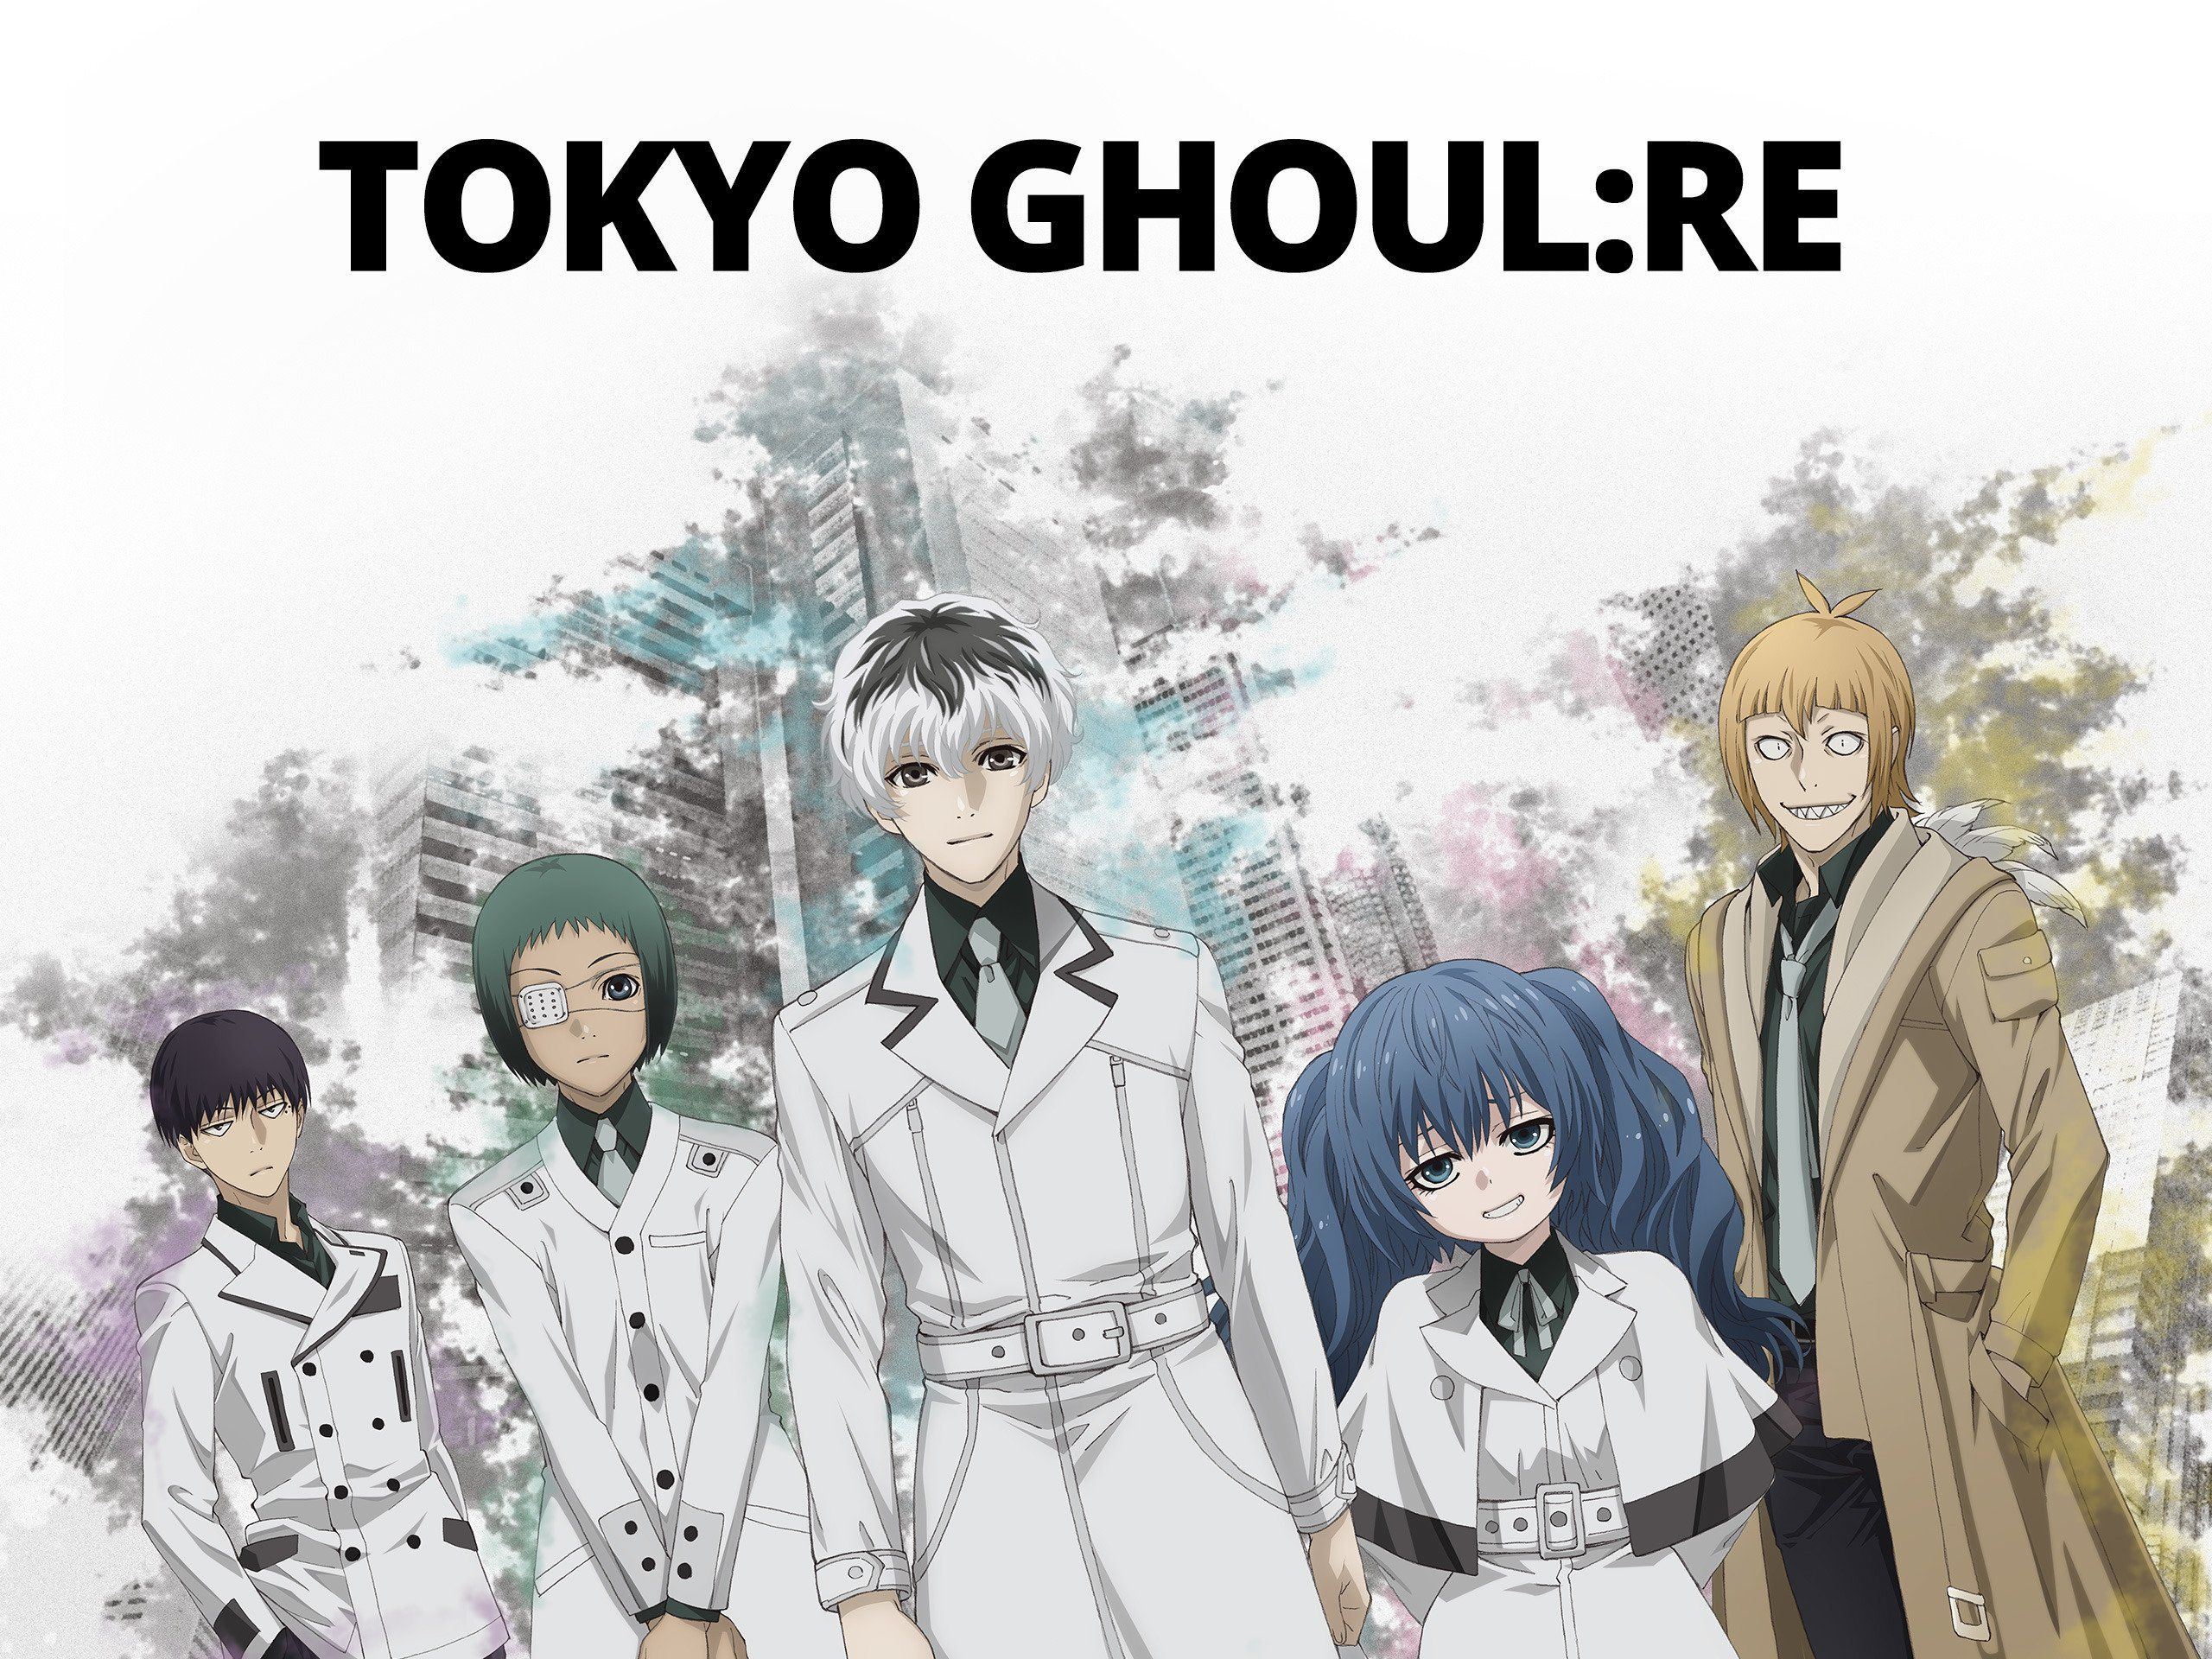 Pin by Alex Walker on Animes in 2020 Tokyo ghoul, Anime